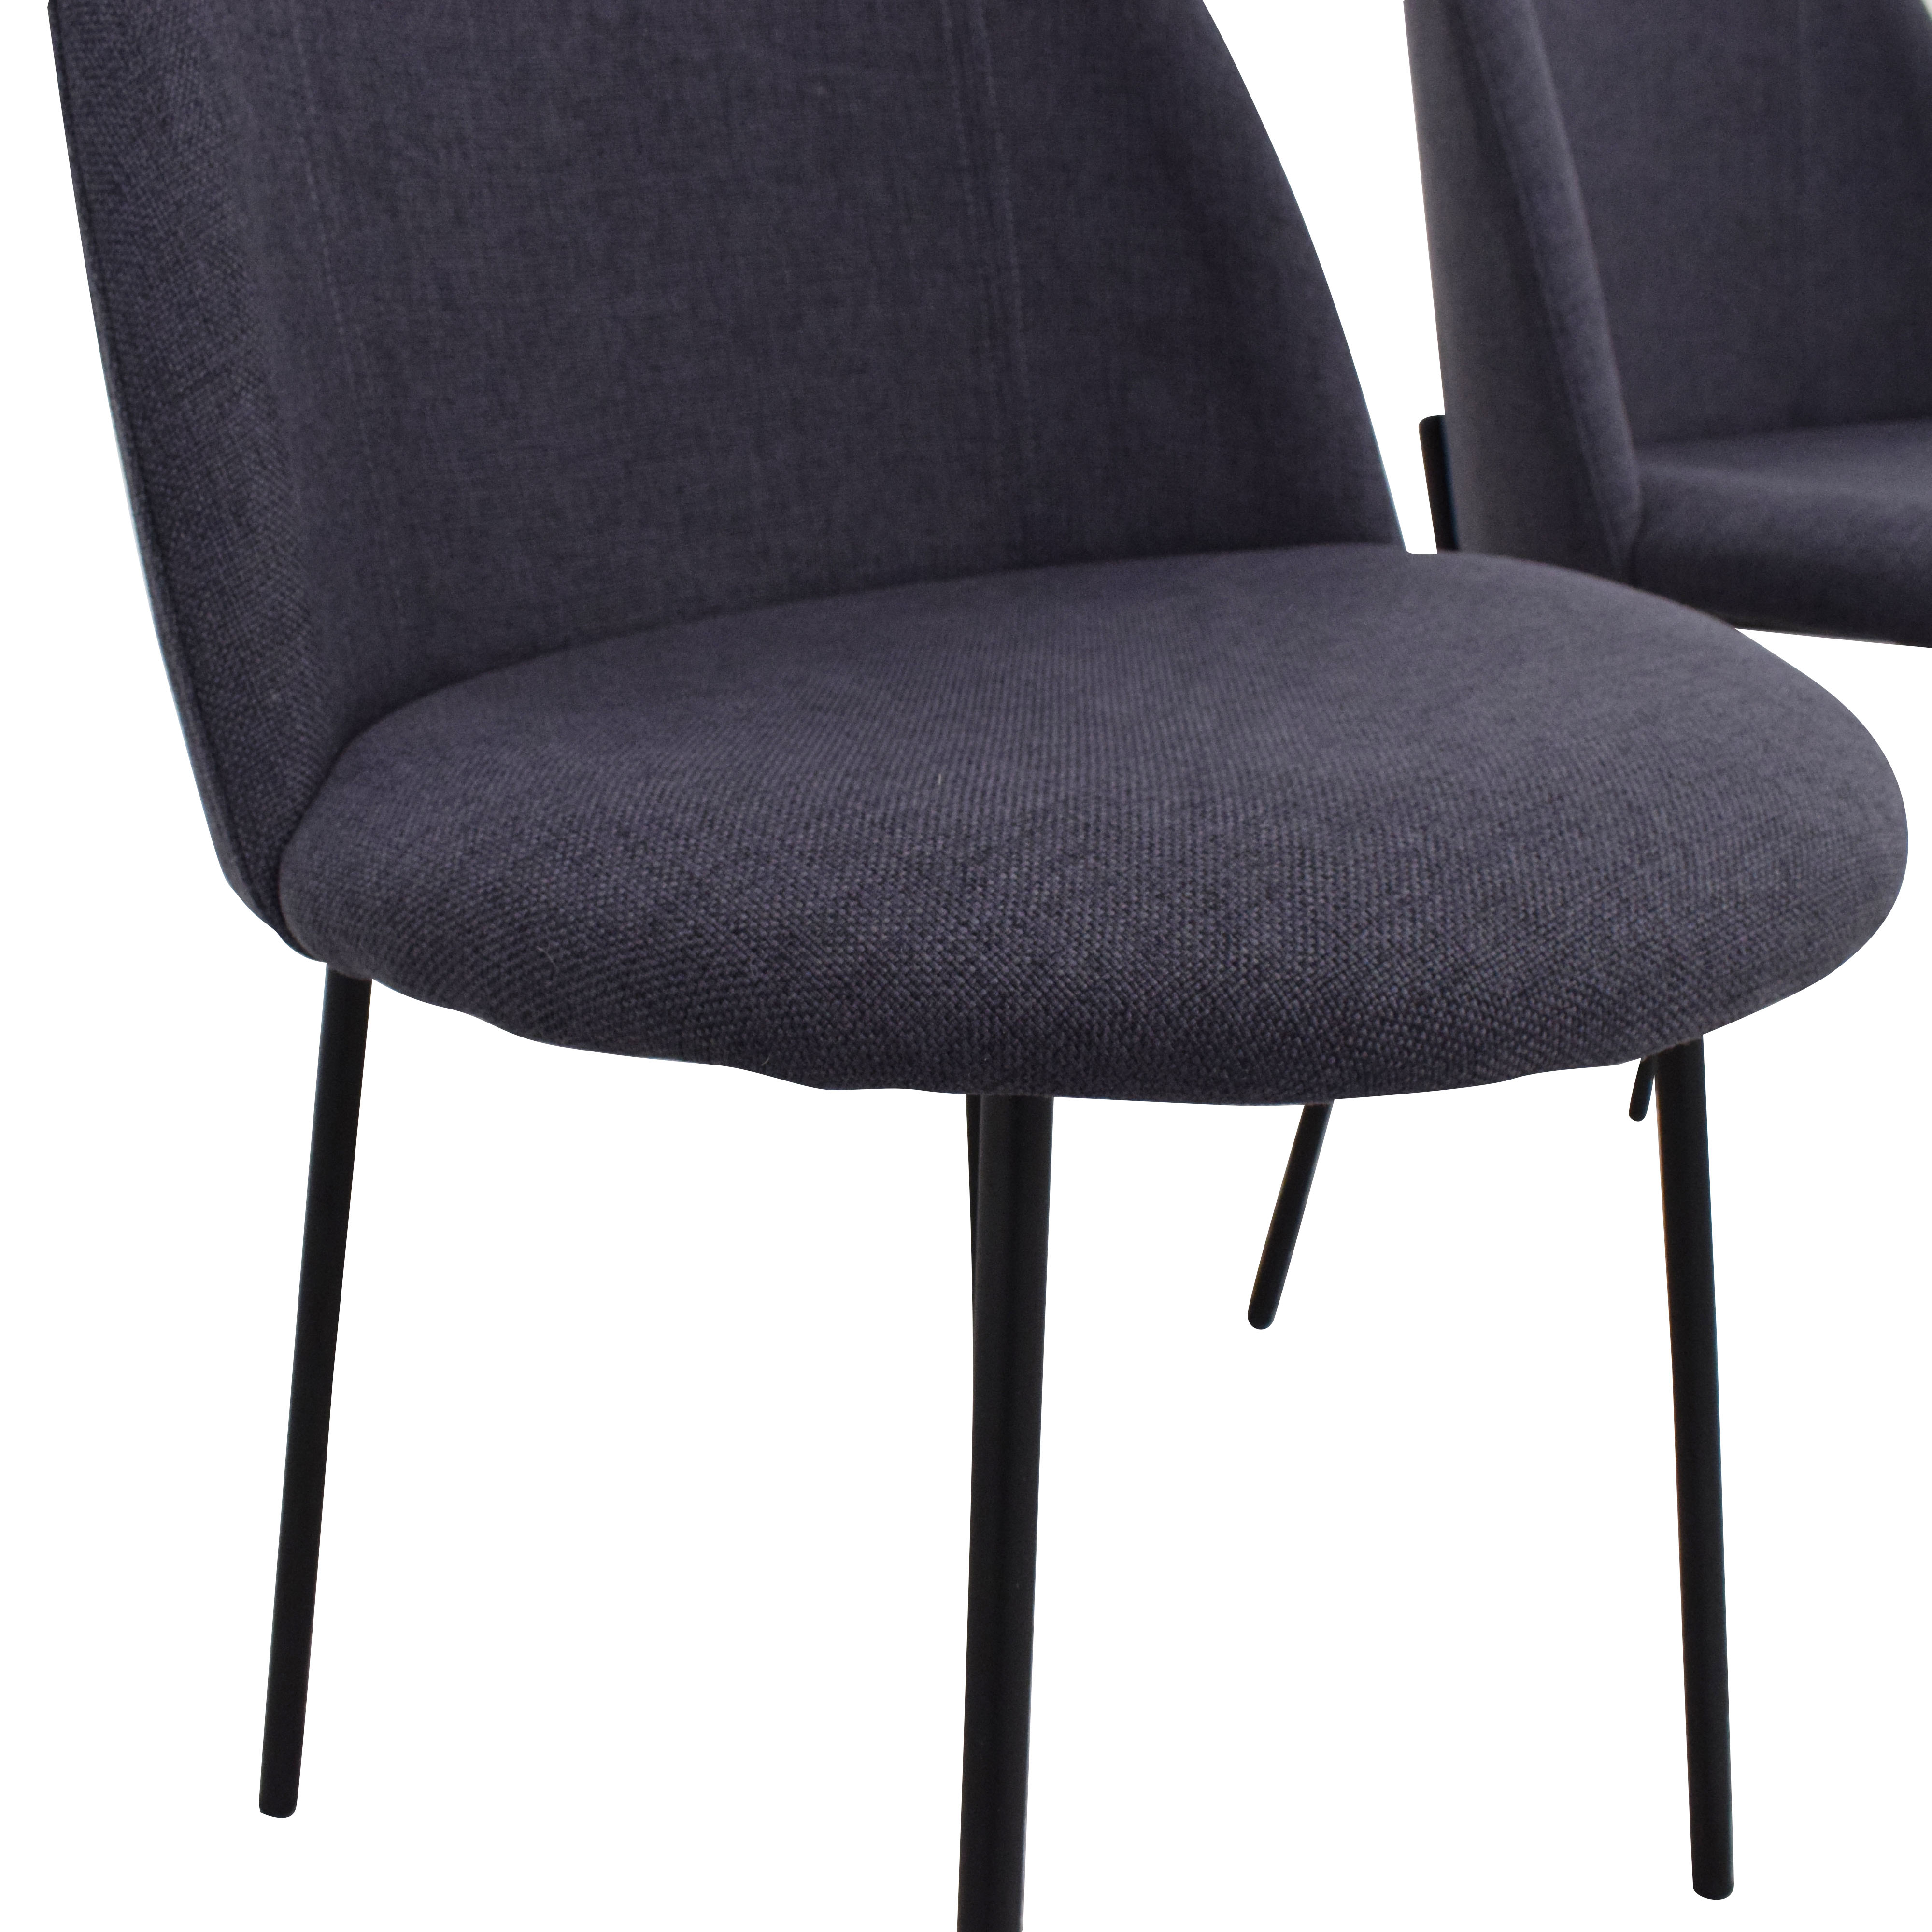 Article Article Ceres Dining Chairs coupon